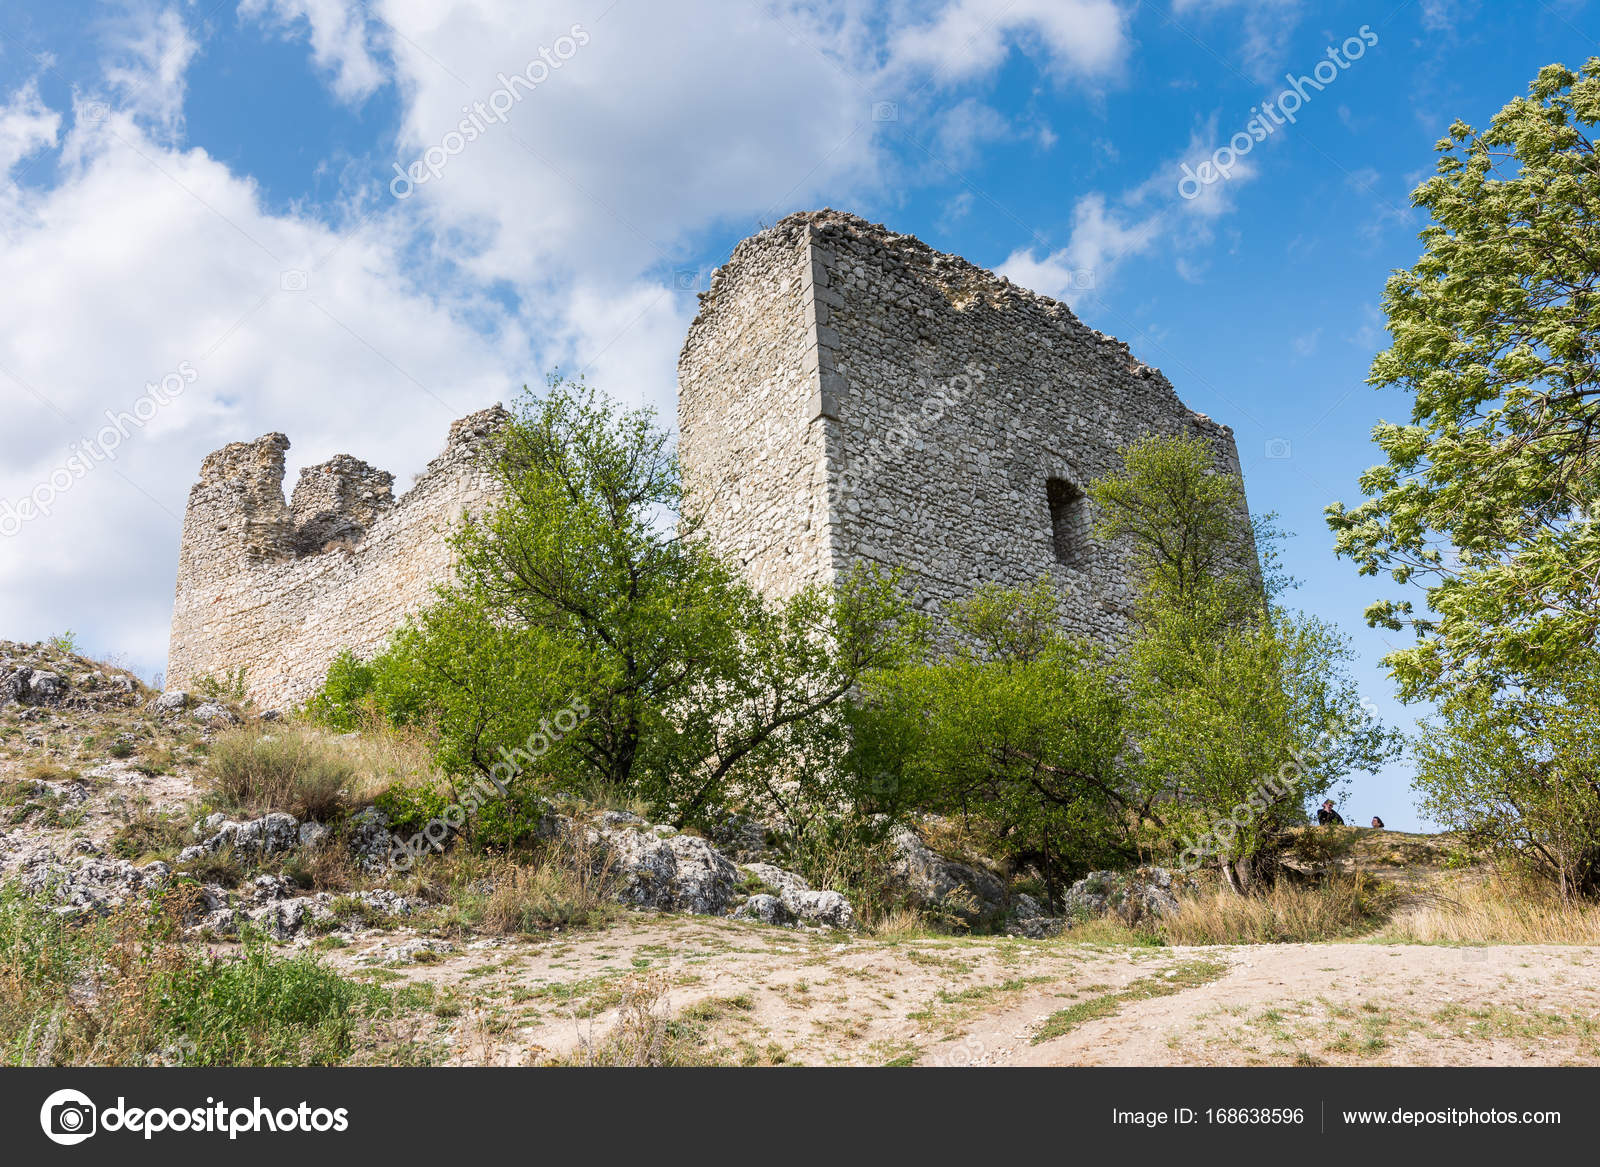 Castle Ruin On The Hill Blue Sky And White Clouds Path On